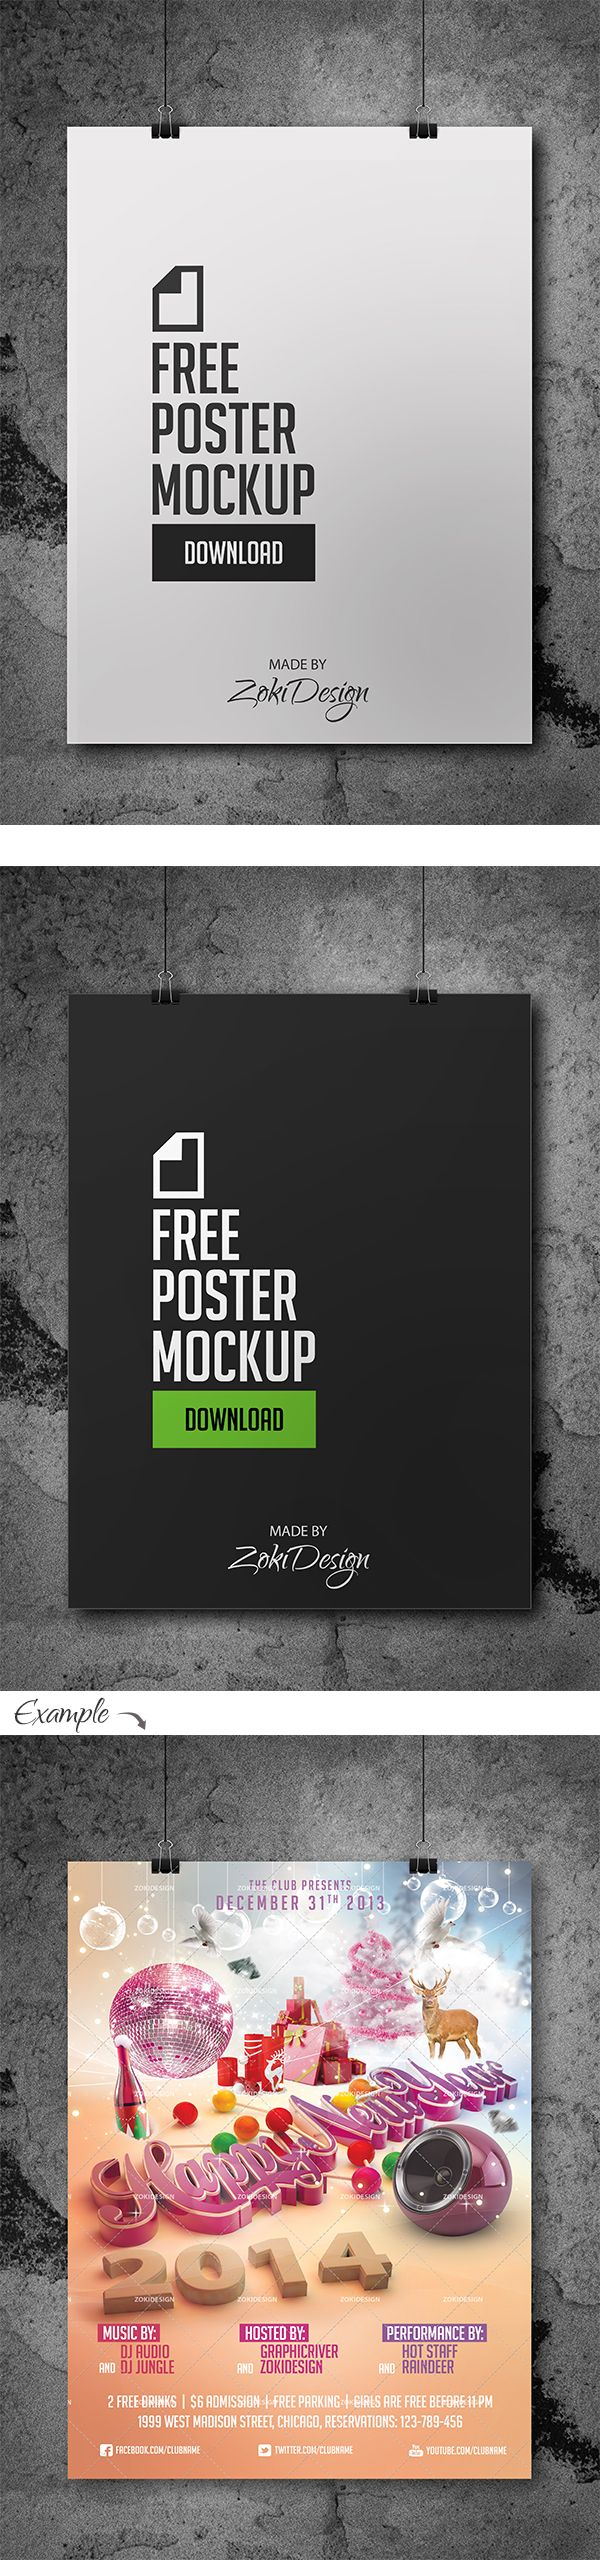 Free poster designs - Best 25 Free Poster Templates Ideas Only On Pinterest Free Poster Maker Custom Posters And Teacher Calendar